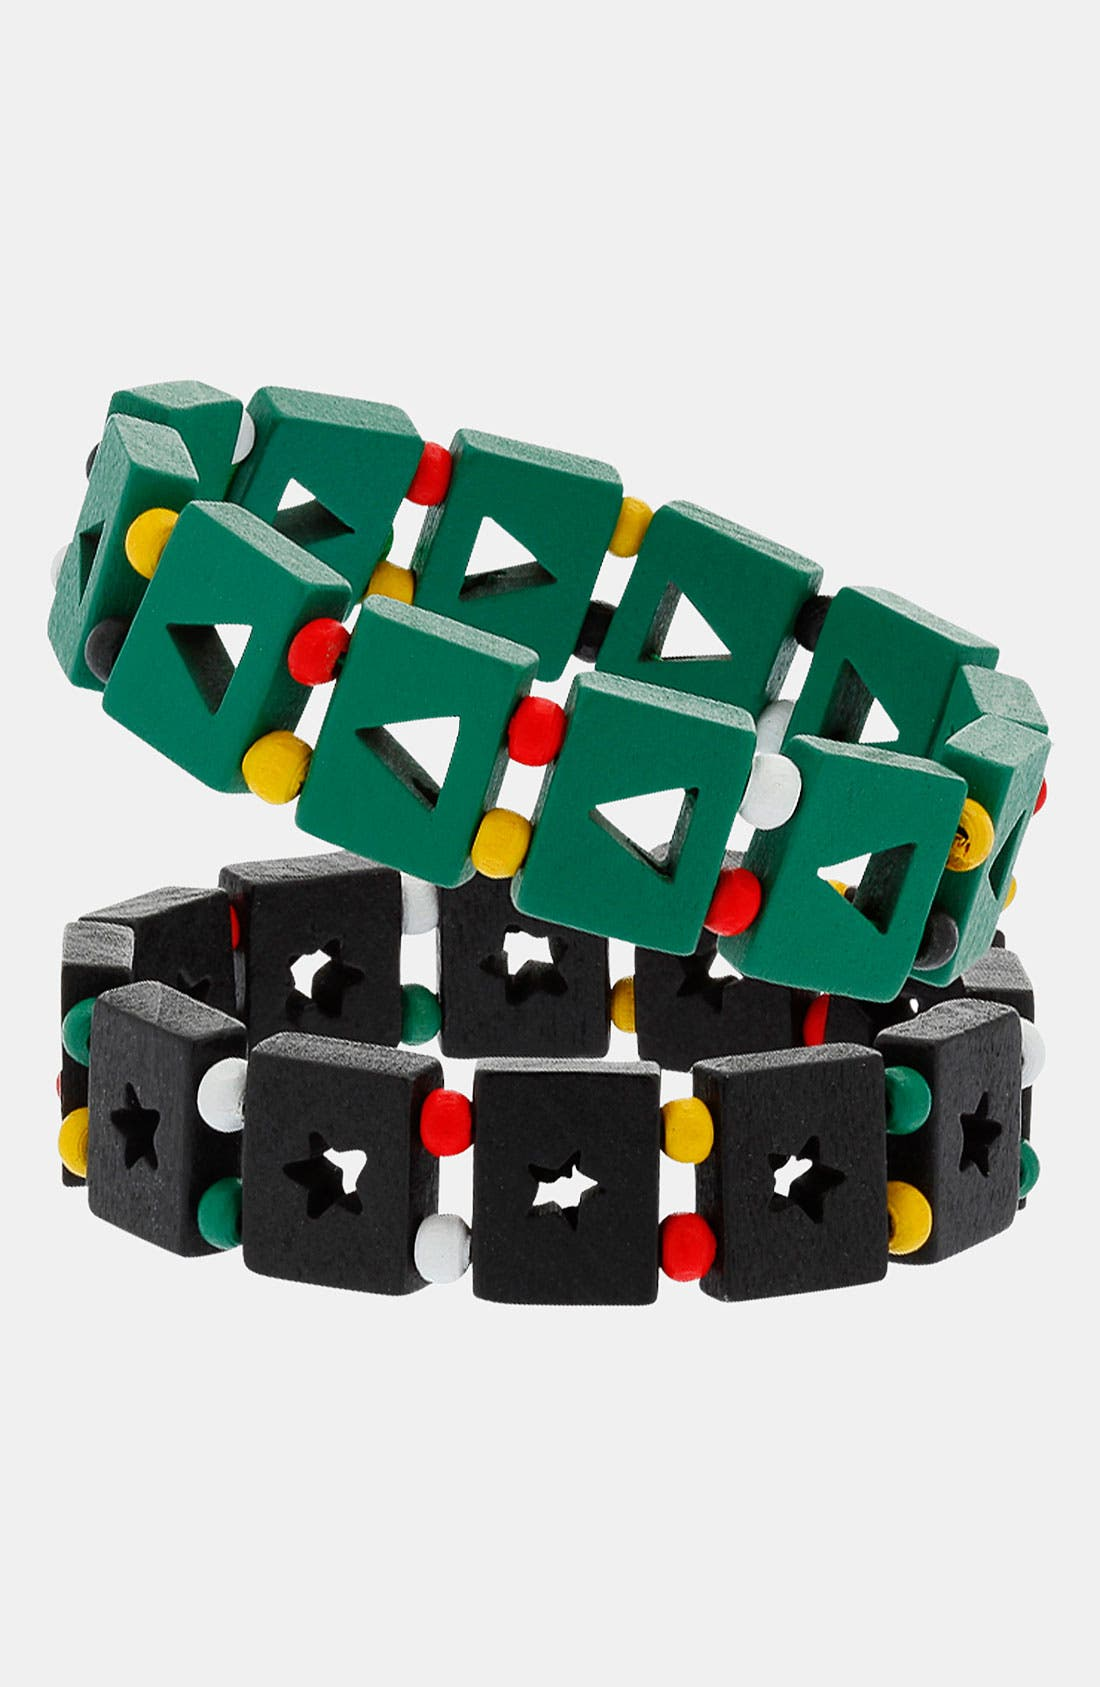 Alternate Image 1 Selected - Topman 'Star & Triangle' Cutout Stretch Bracelets (Set of 2)